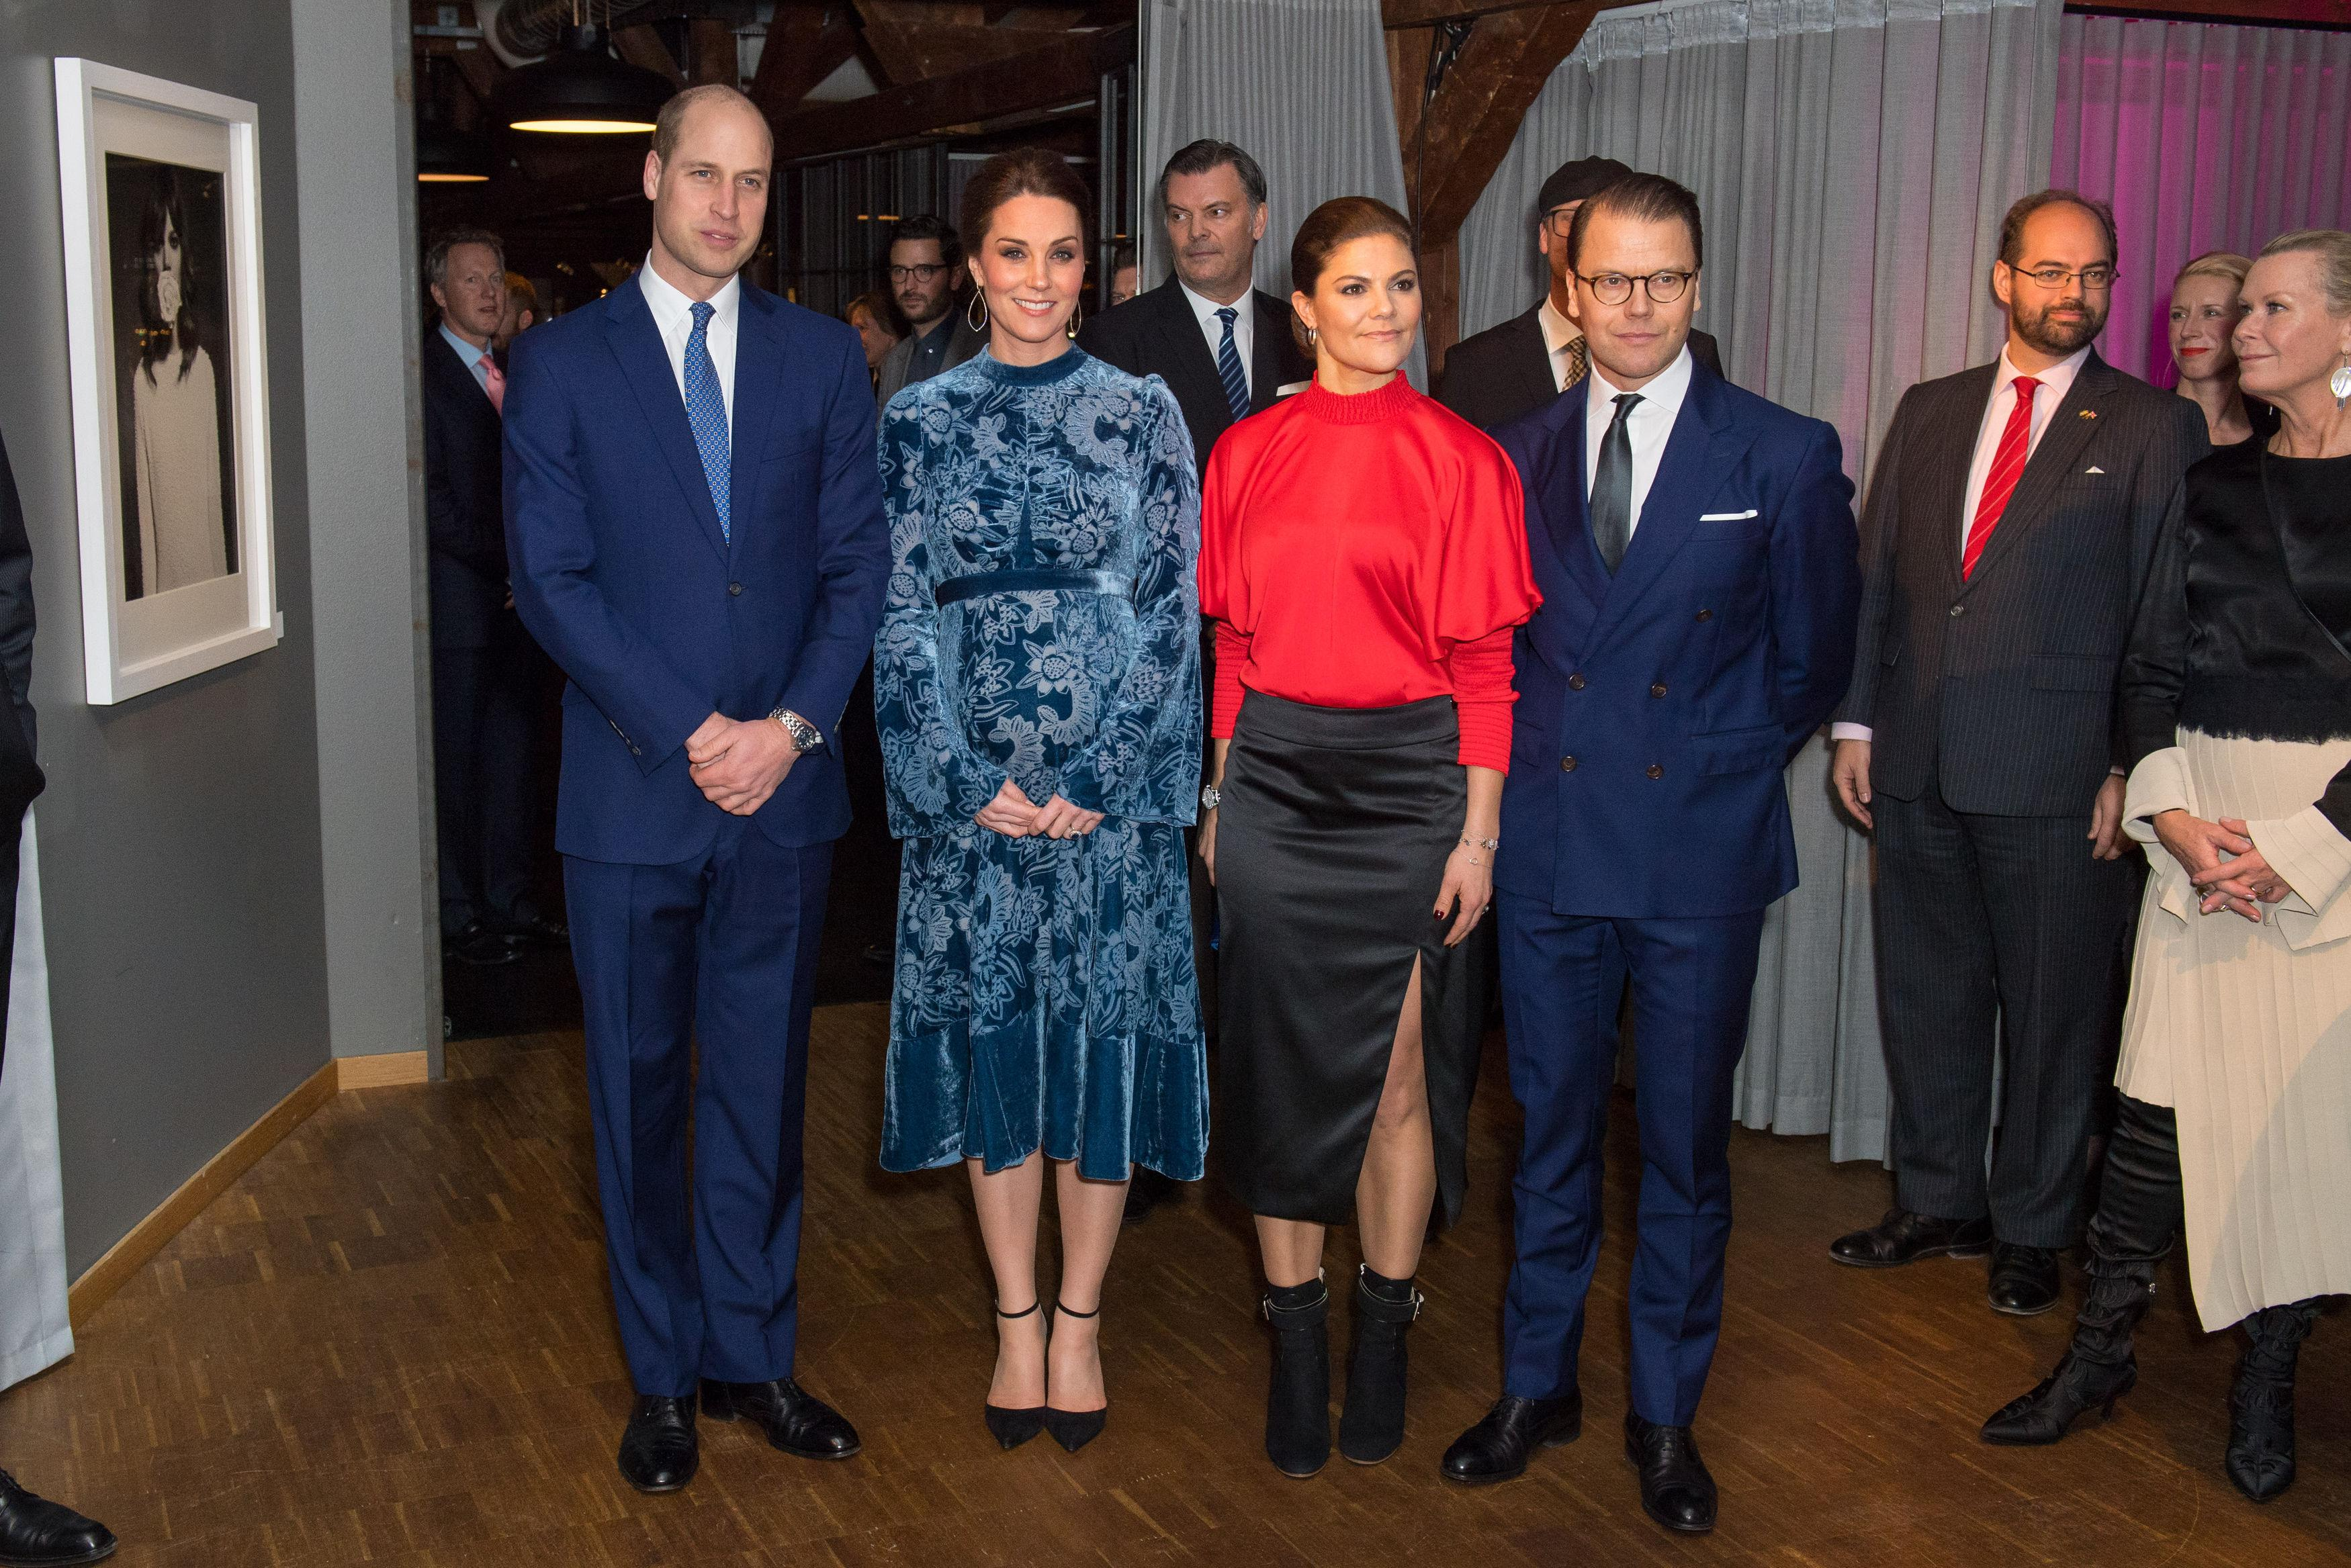 Kate Middleton's Bright Checkered Coat Is a Breath of Fresh Air